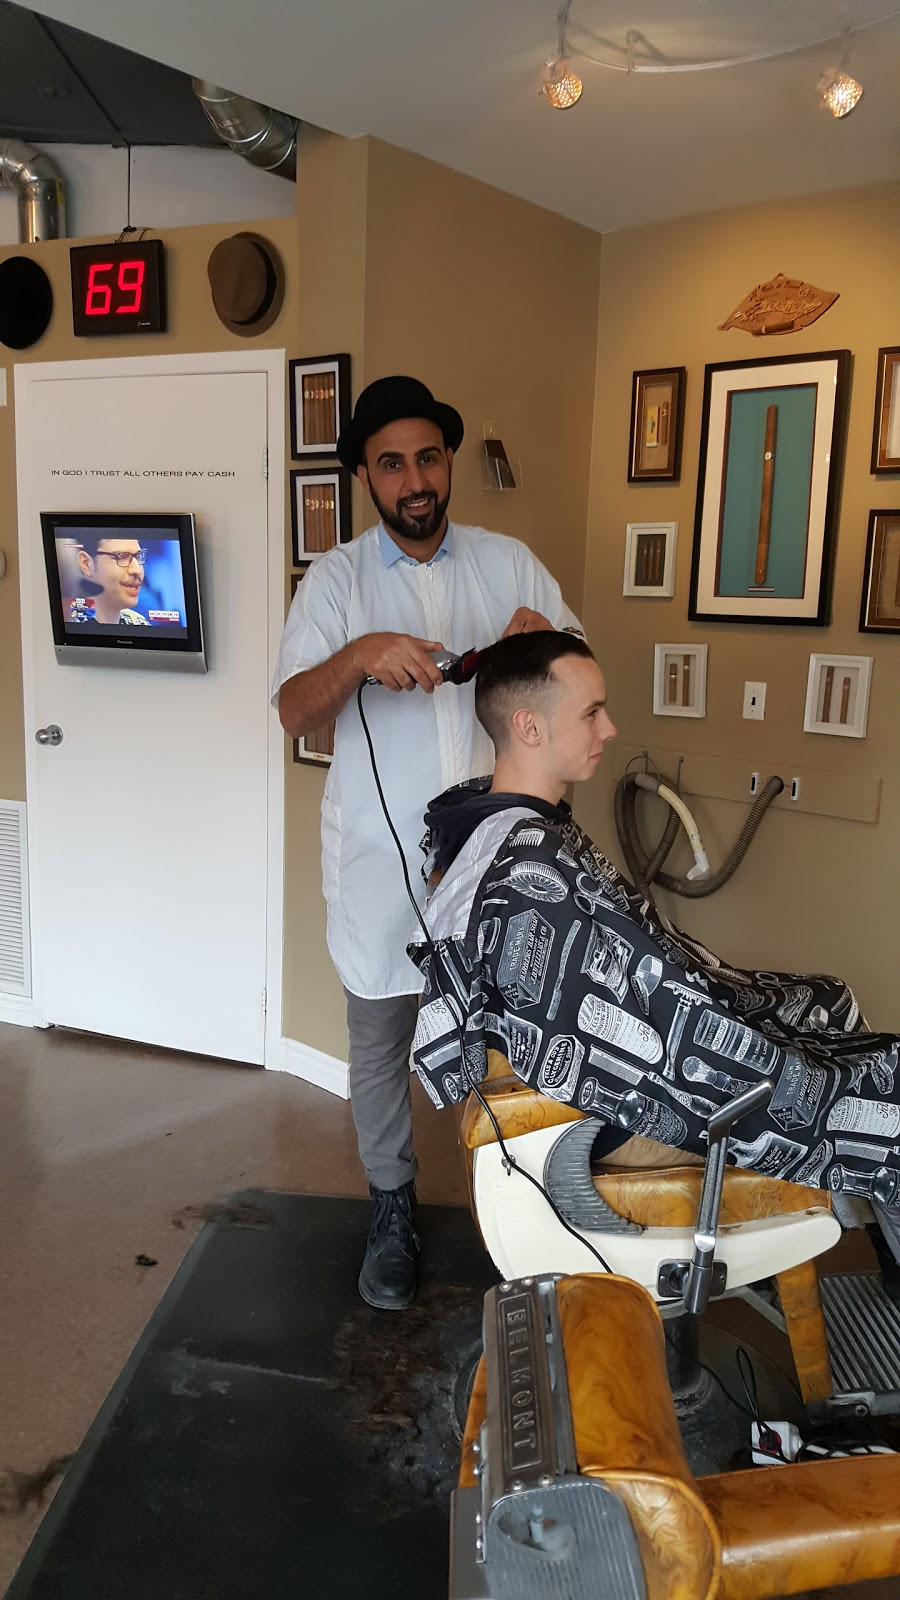 Moes Barber Shop   hair care   205 Franktown Rd, Carleton Place, ON K7C 2N9, Canada   6132760047 OR +1 613-276-0047